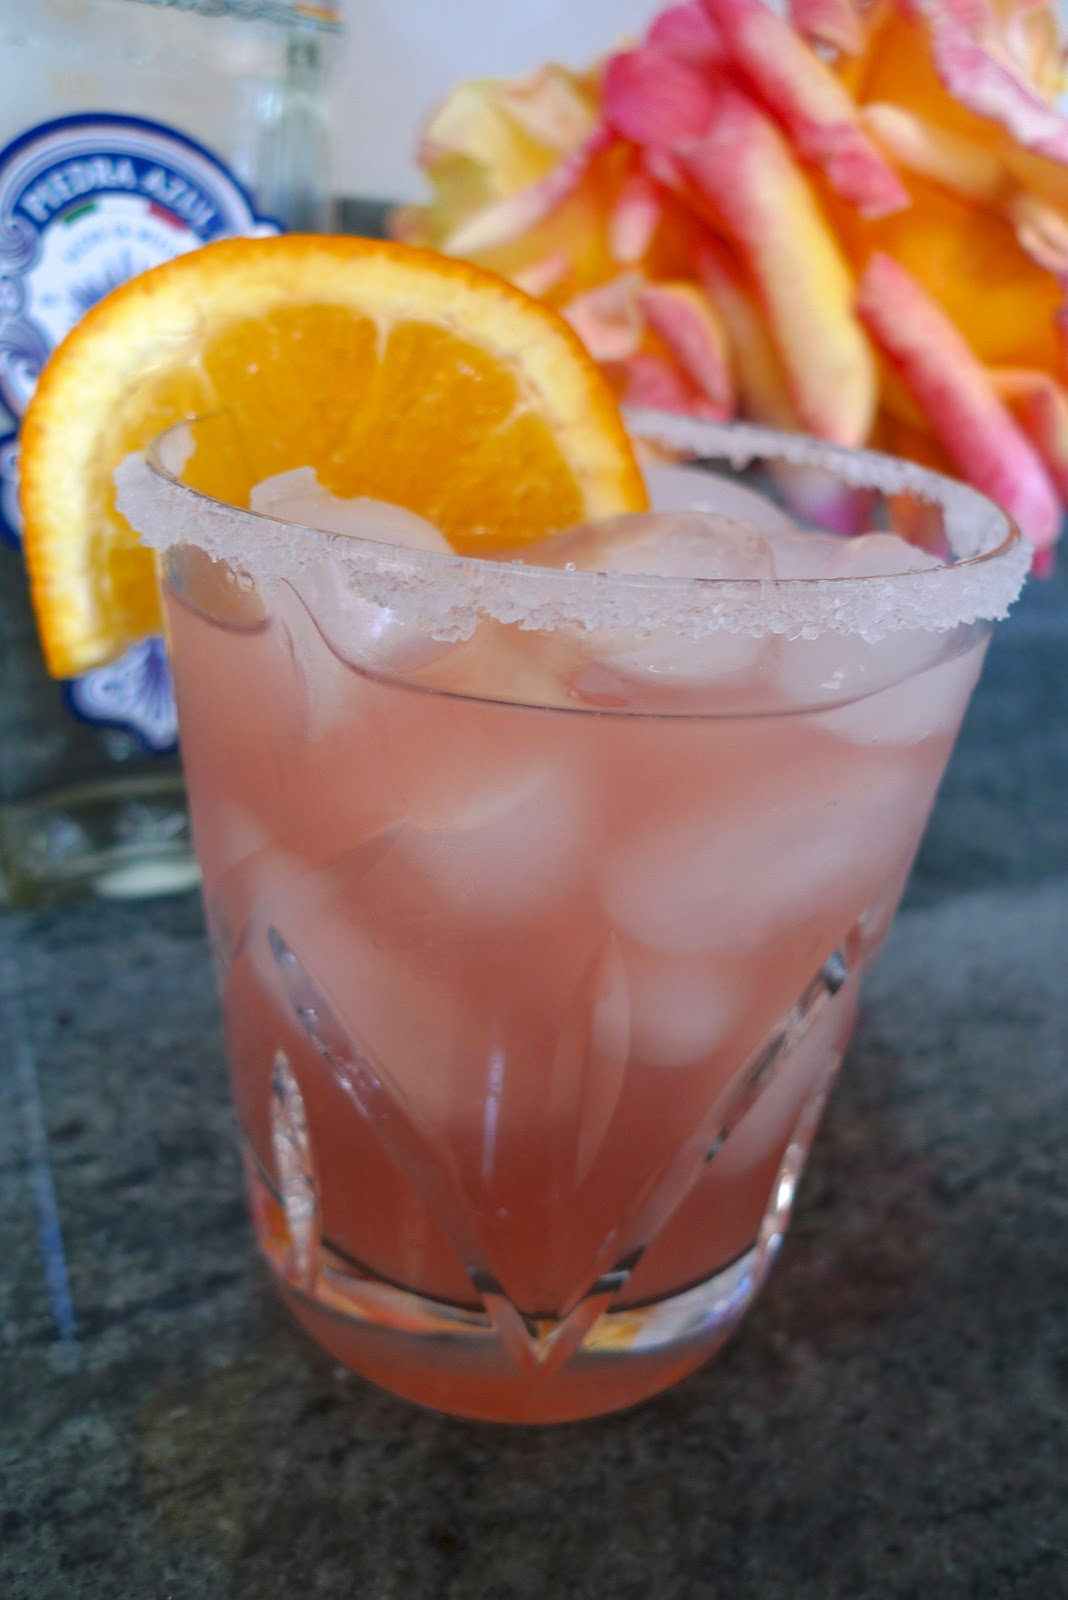 siriously delicious: Piedra Azul Tequila + Blood Orange ...